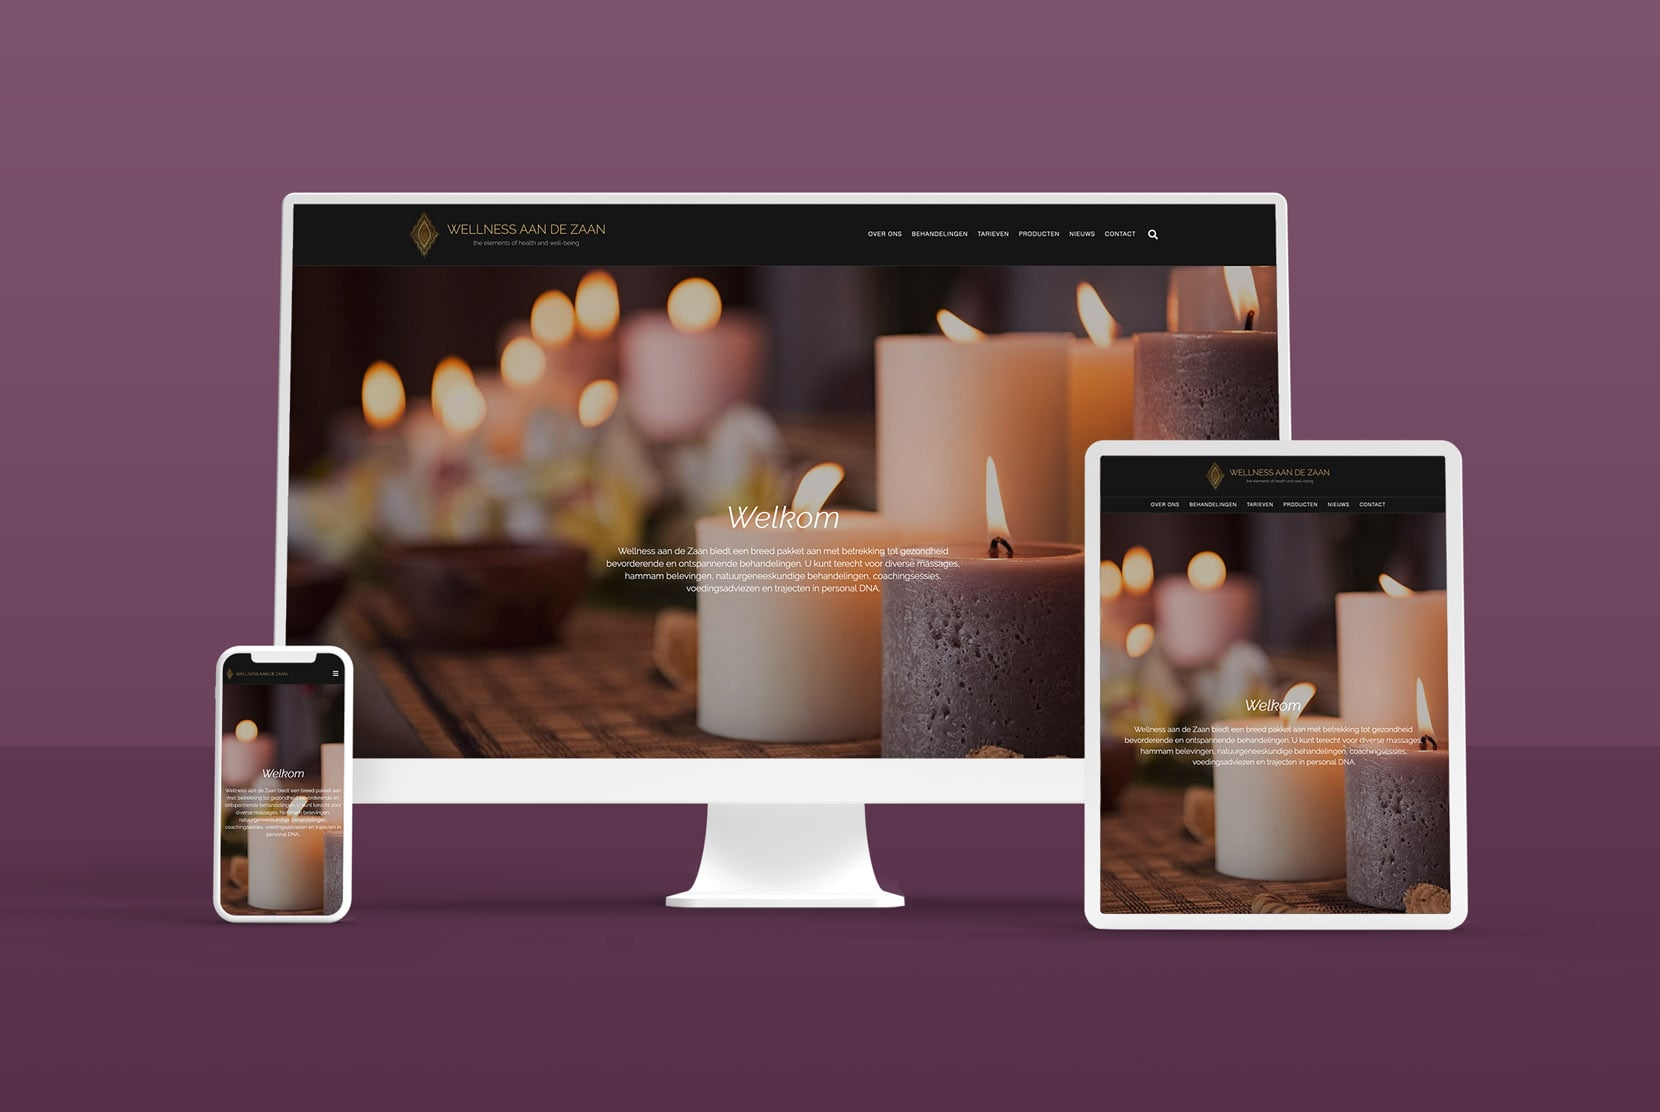 Multidevices with design of wellness website